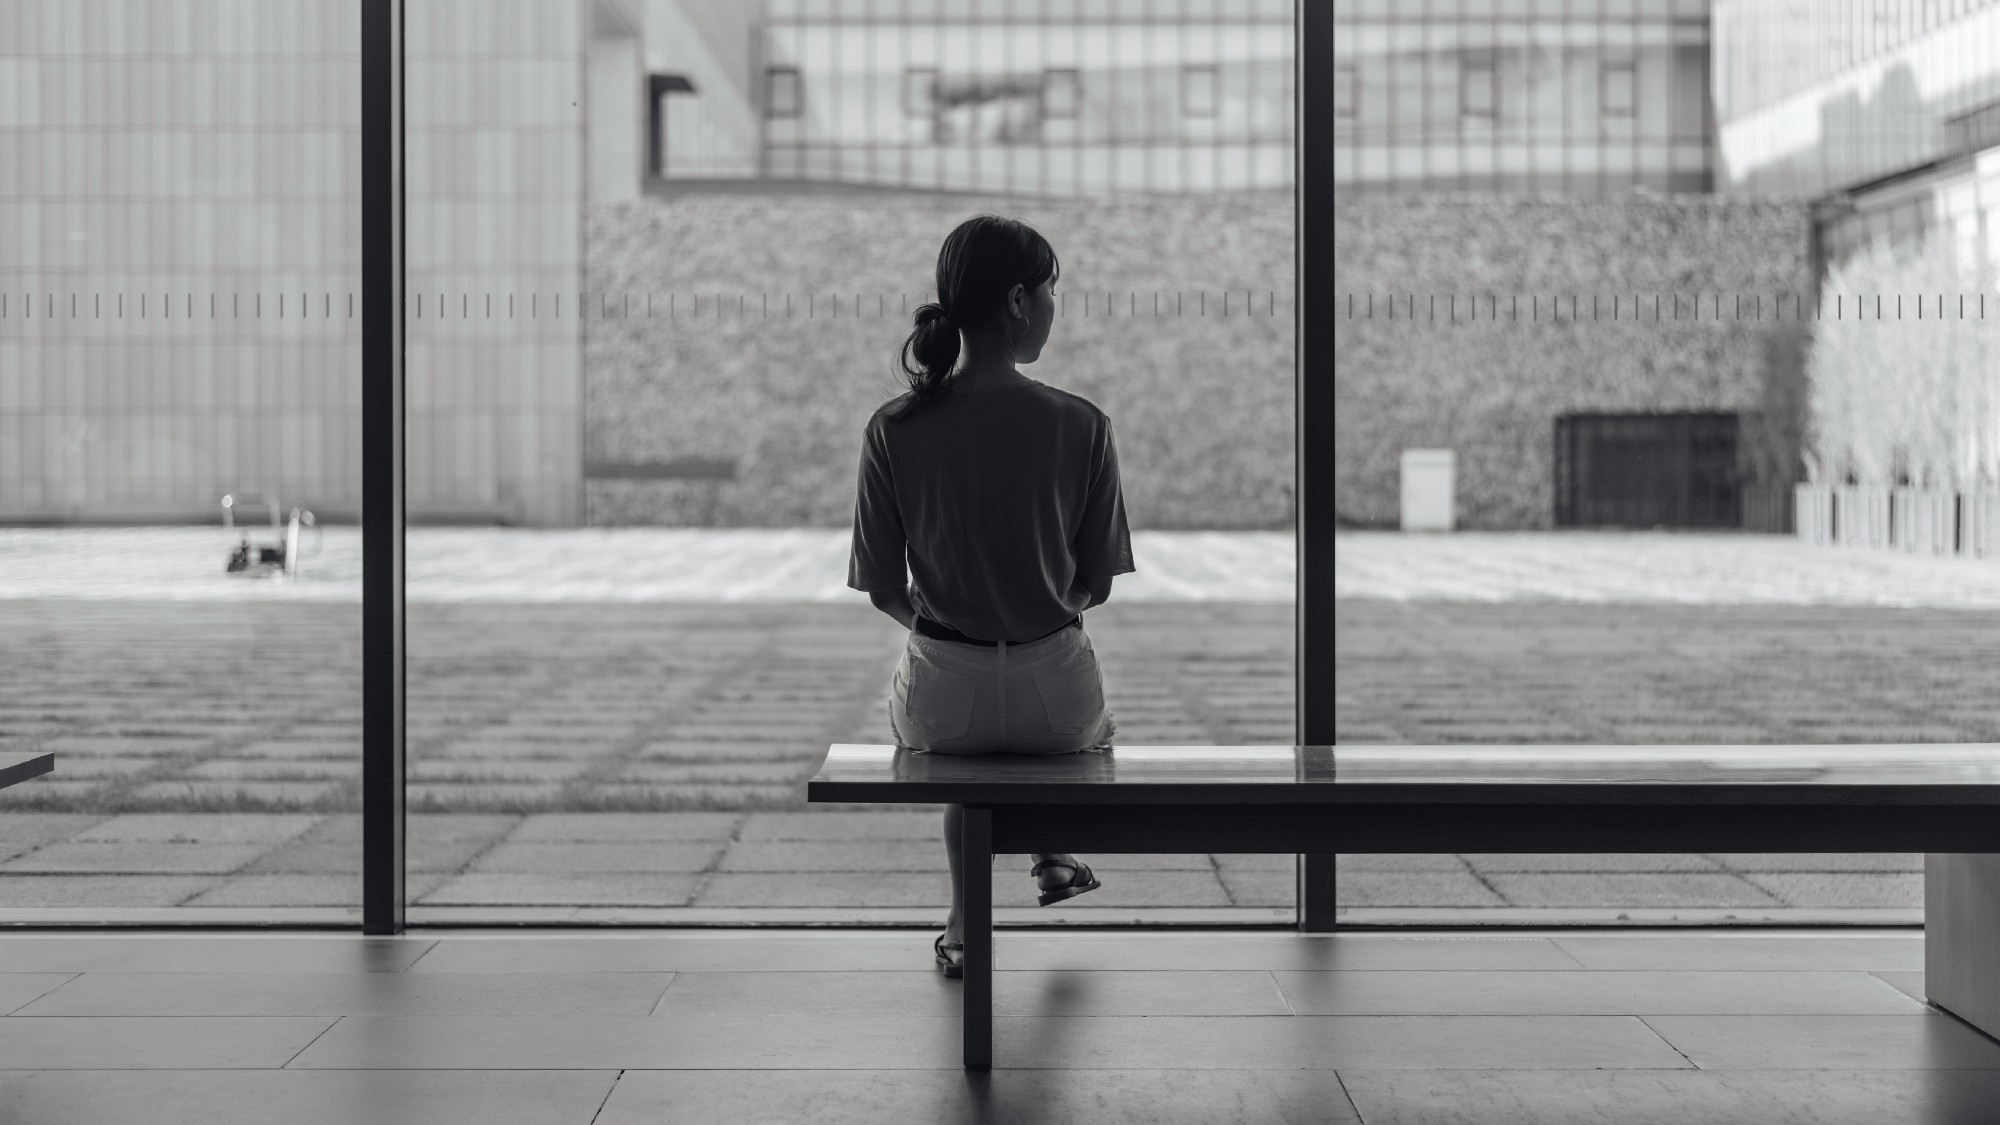 lonely girl sitting on bench alone black and white photo